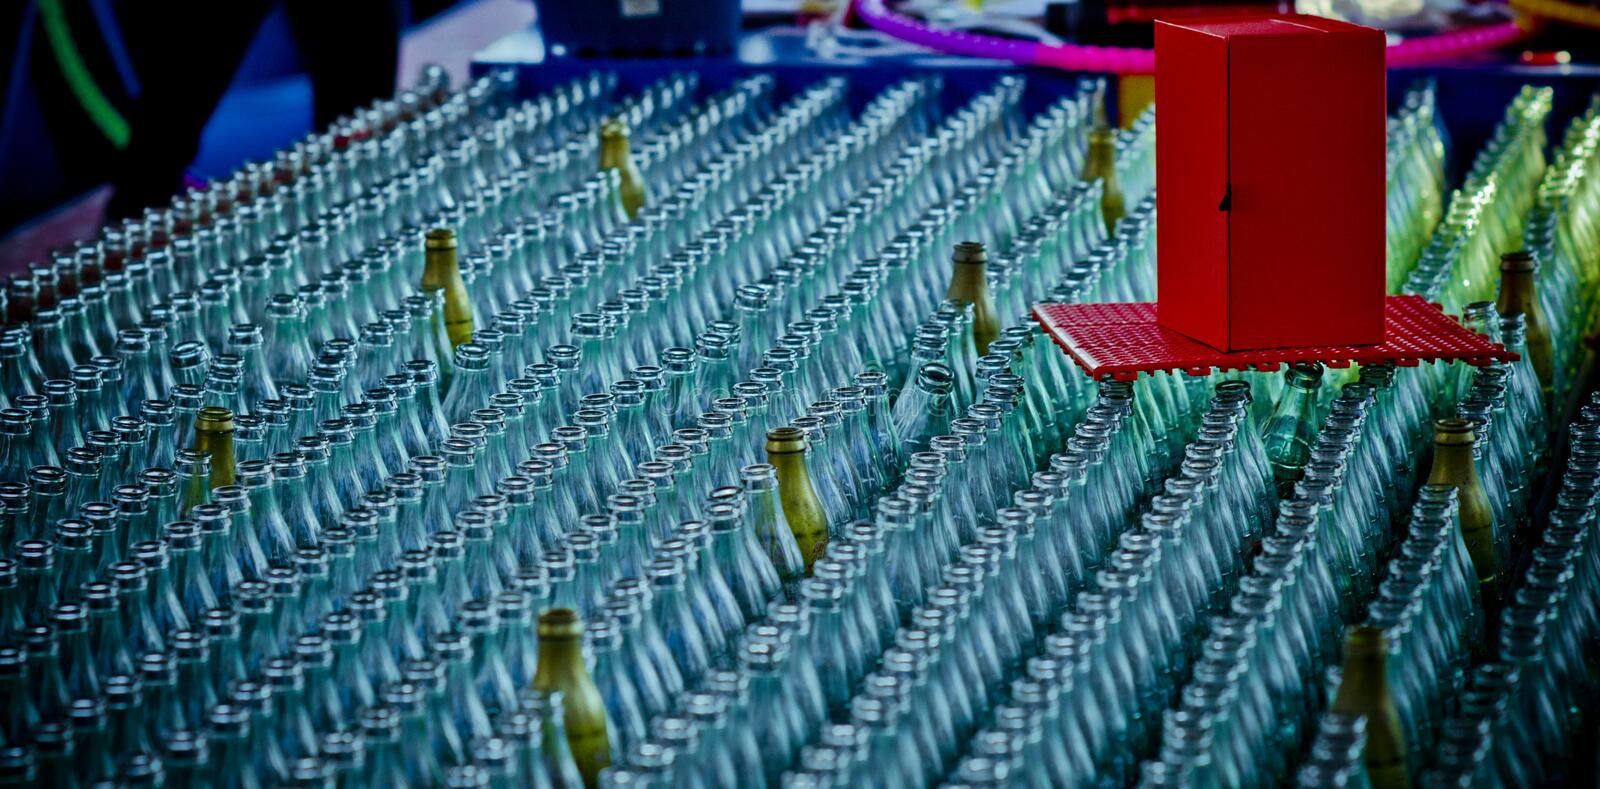 Many glass bottles. royalty free stock images